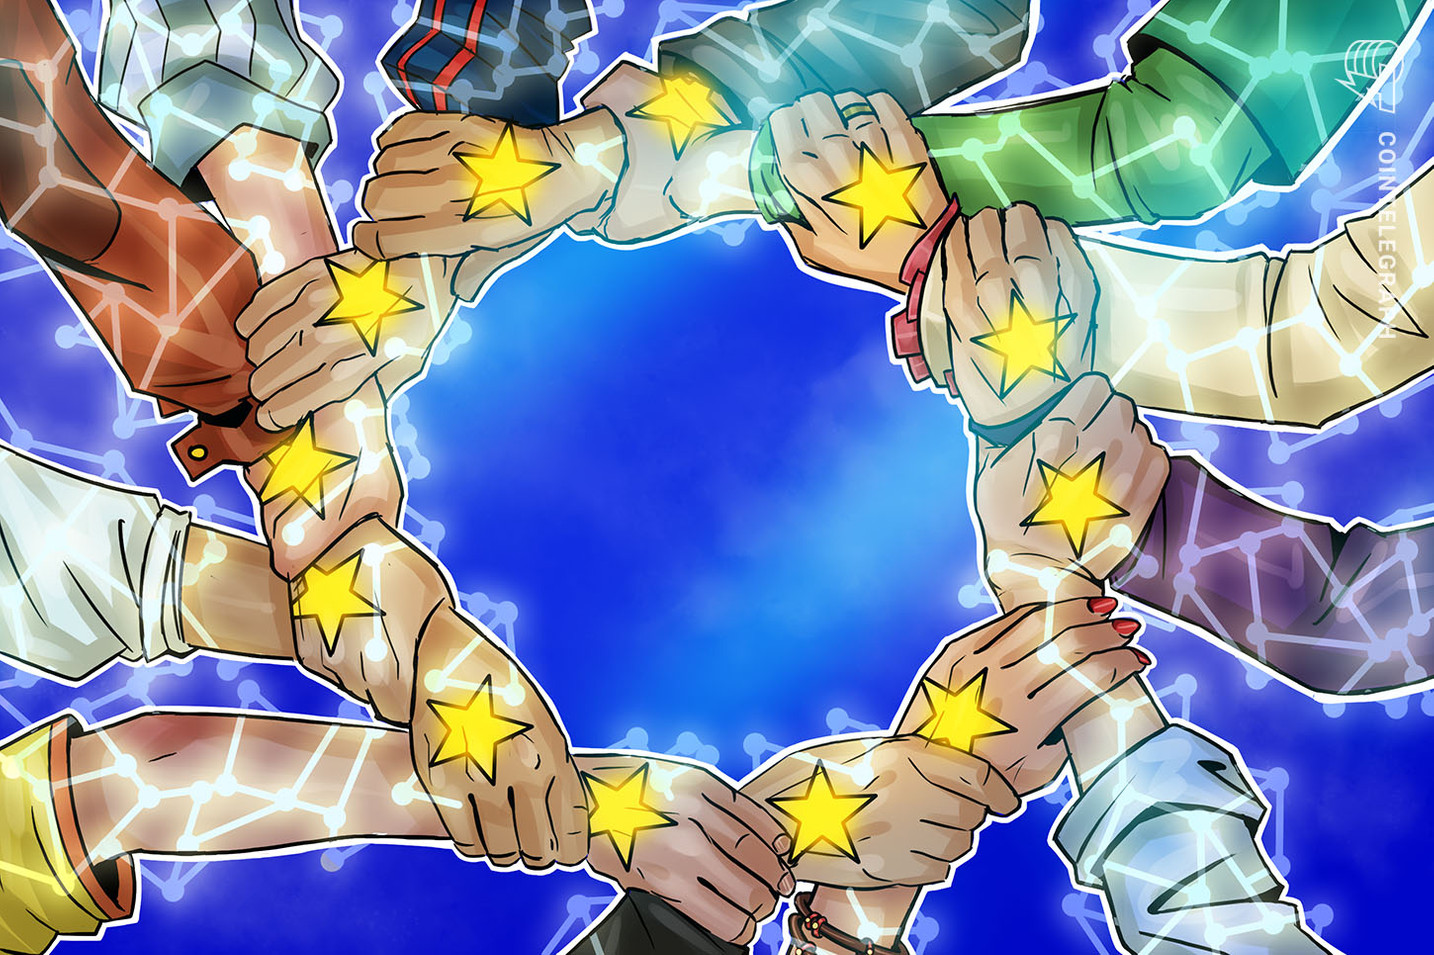 Europäische Union gründet International Association of Trusted Blockchain Applications